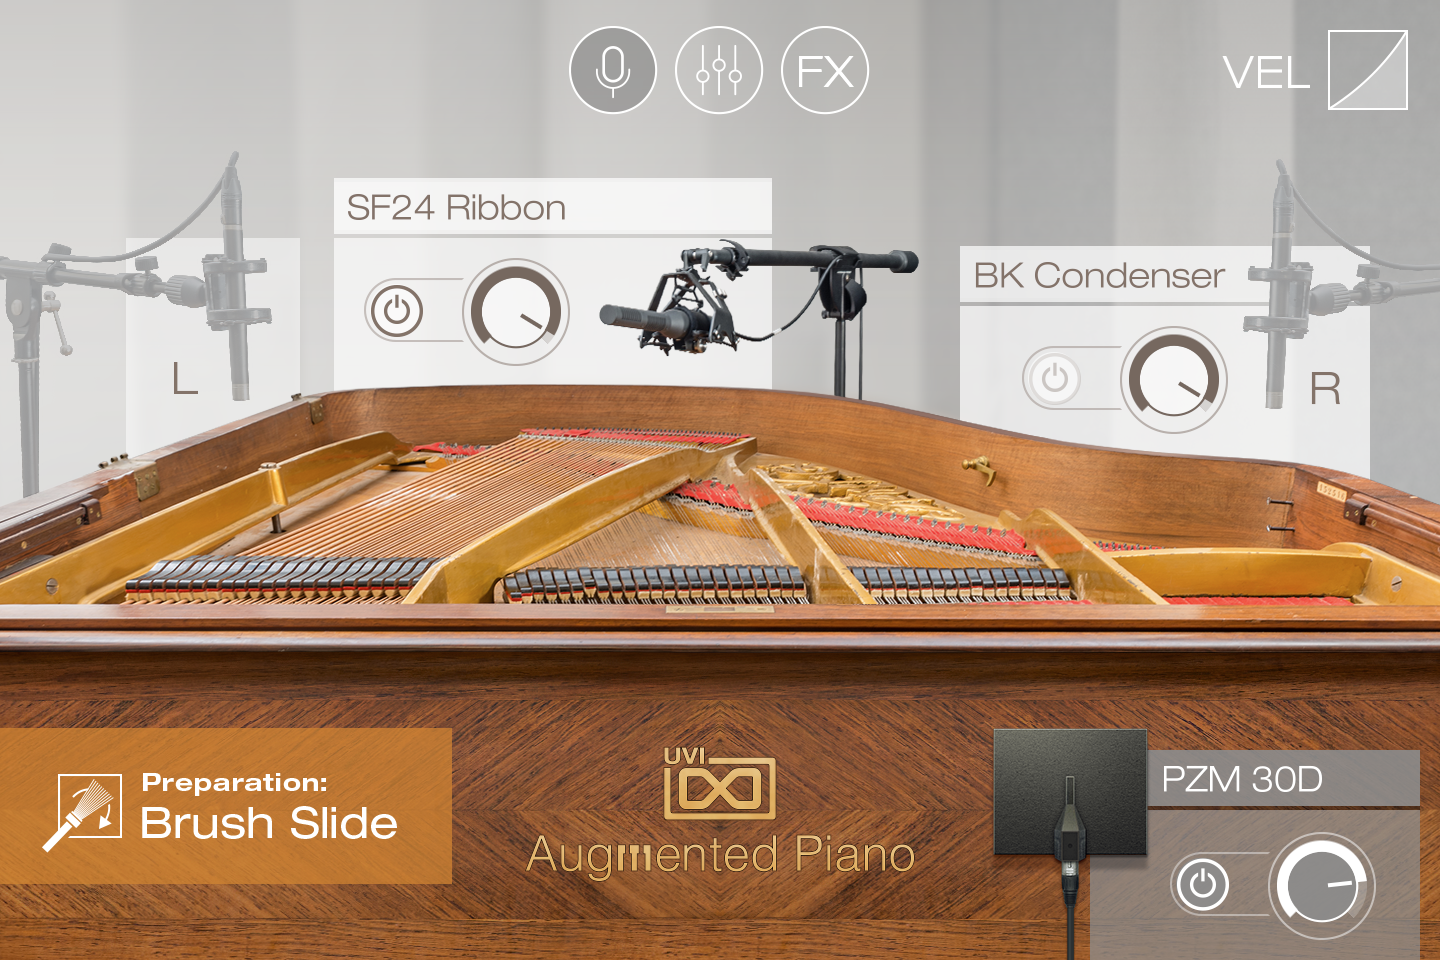 UVI Augmented Piano | Preparations GUI - Brush Slide